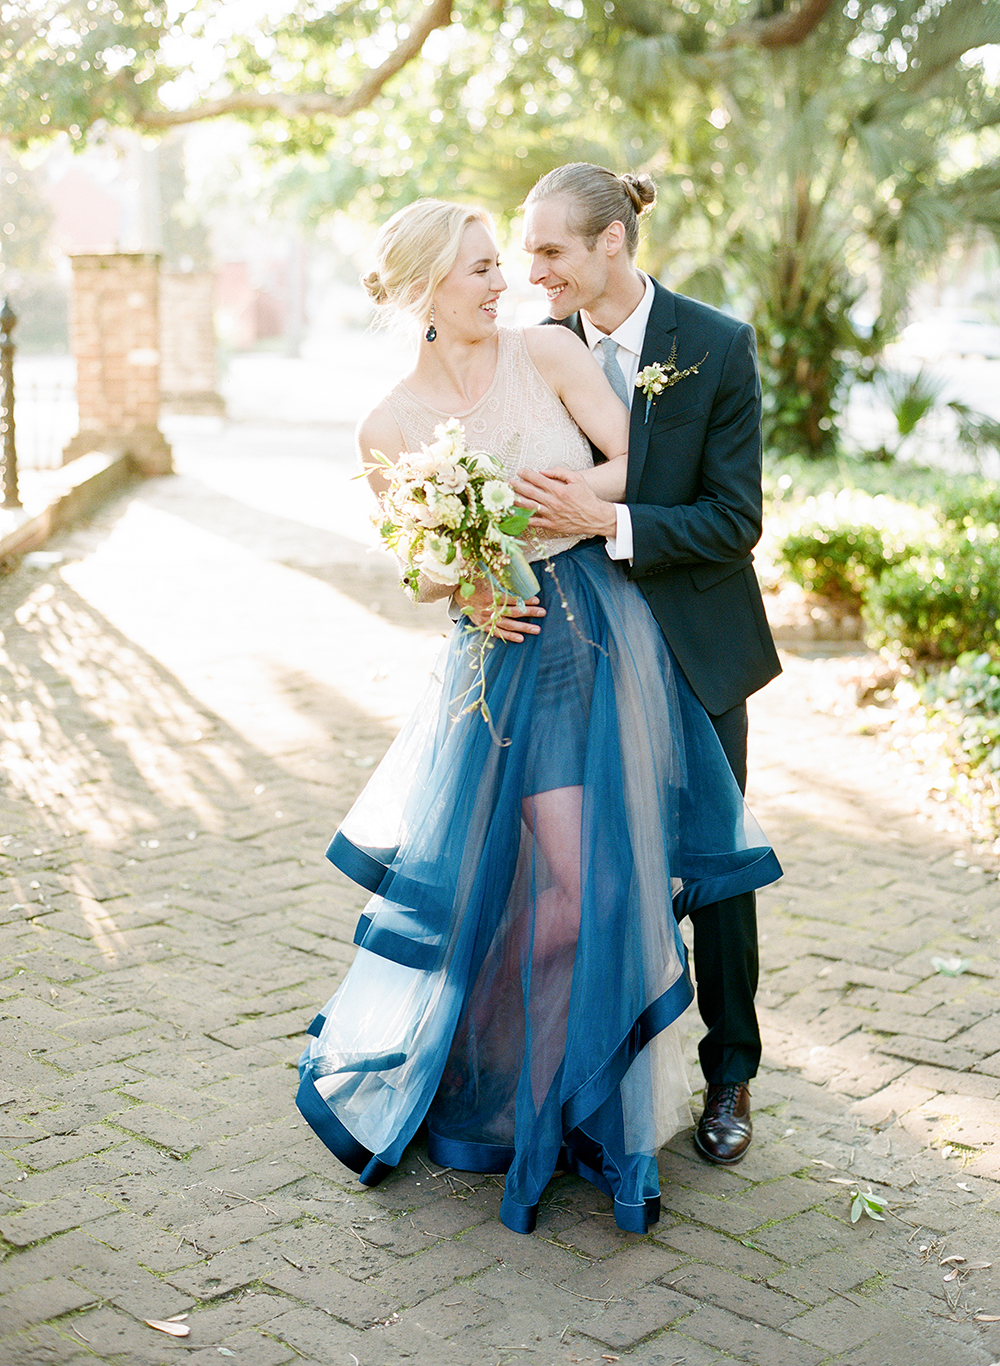 modern bridal fashion - photo by Lisa Blume Photography http://ruffledblog.com/cyanotype-inspired-wedding-ideas